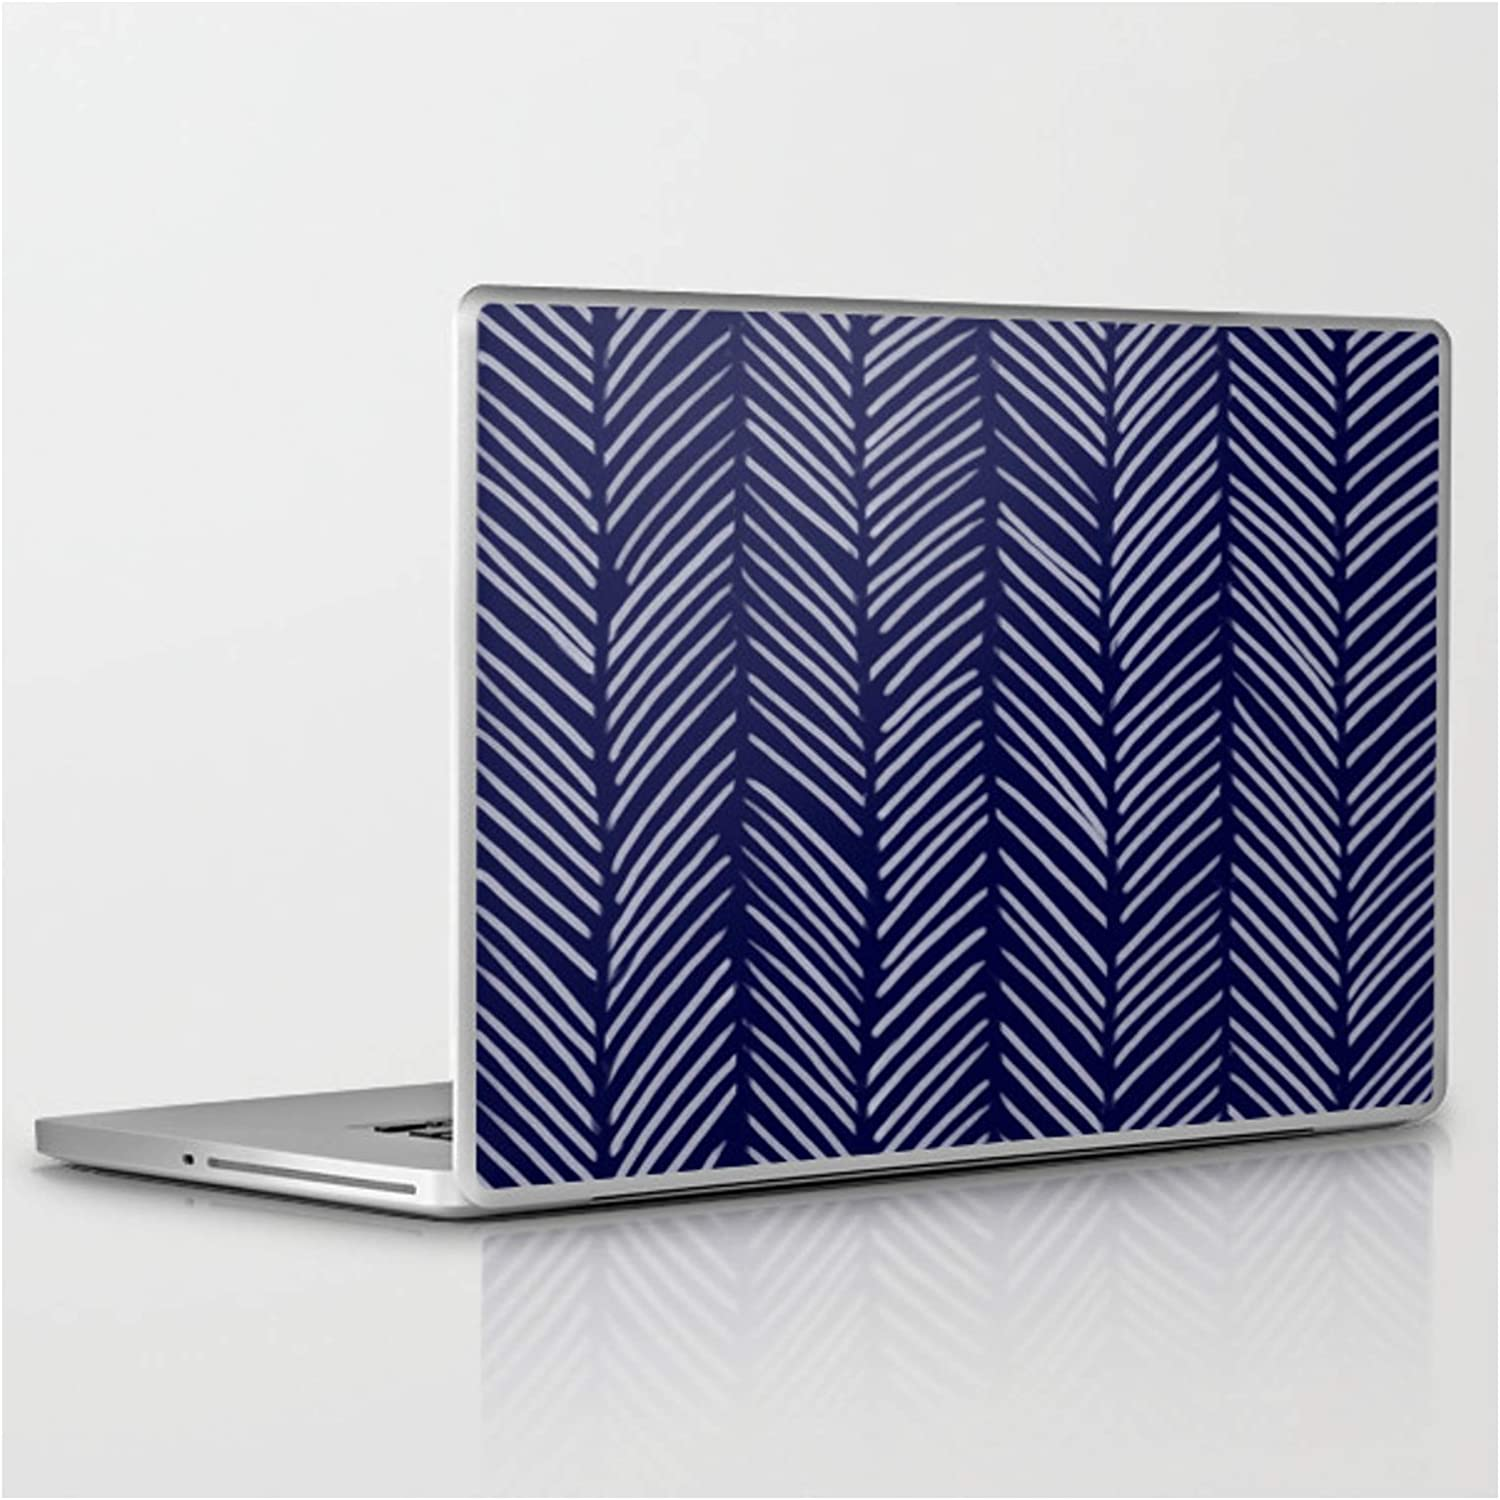 Indigo Herringbone by Color Fixed price for sale Cheap mail order shopping Obsession Tablet Skin on - Laptop